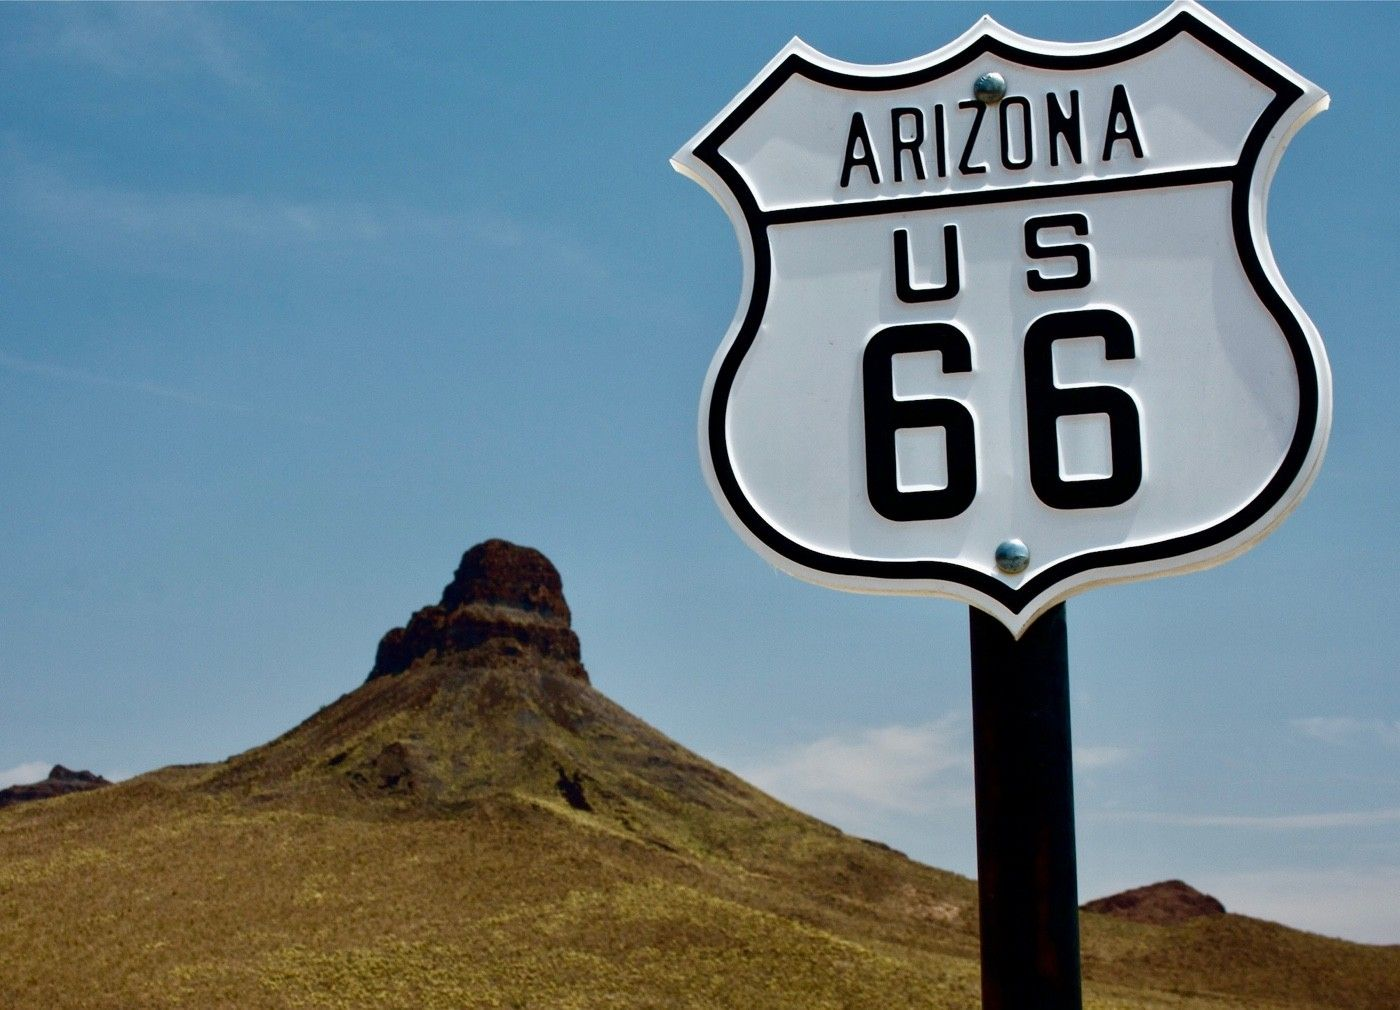 You really can get some kicks on Route 66!